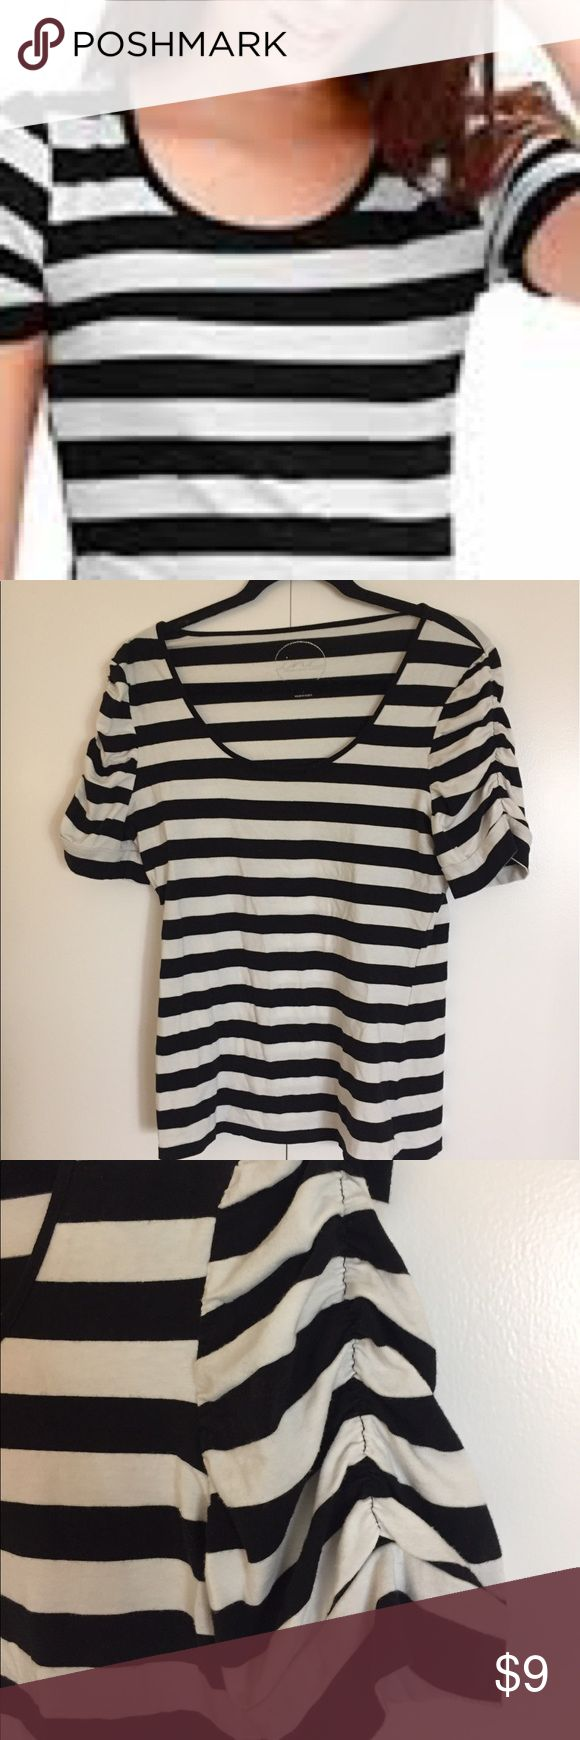 INC Black and white top with ruffled sleeves INC Black and white top with ruffled sleeves INC International Concepts Tops Tees - Short Sleeve